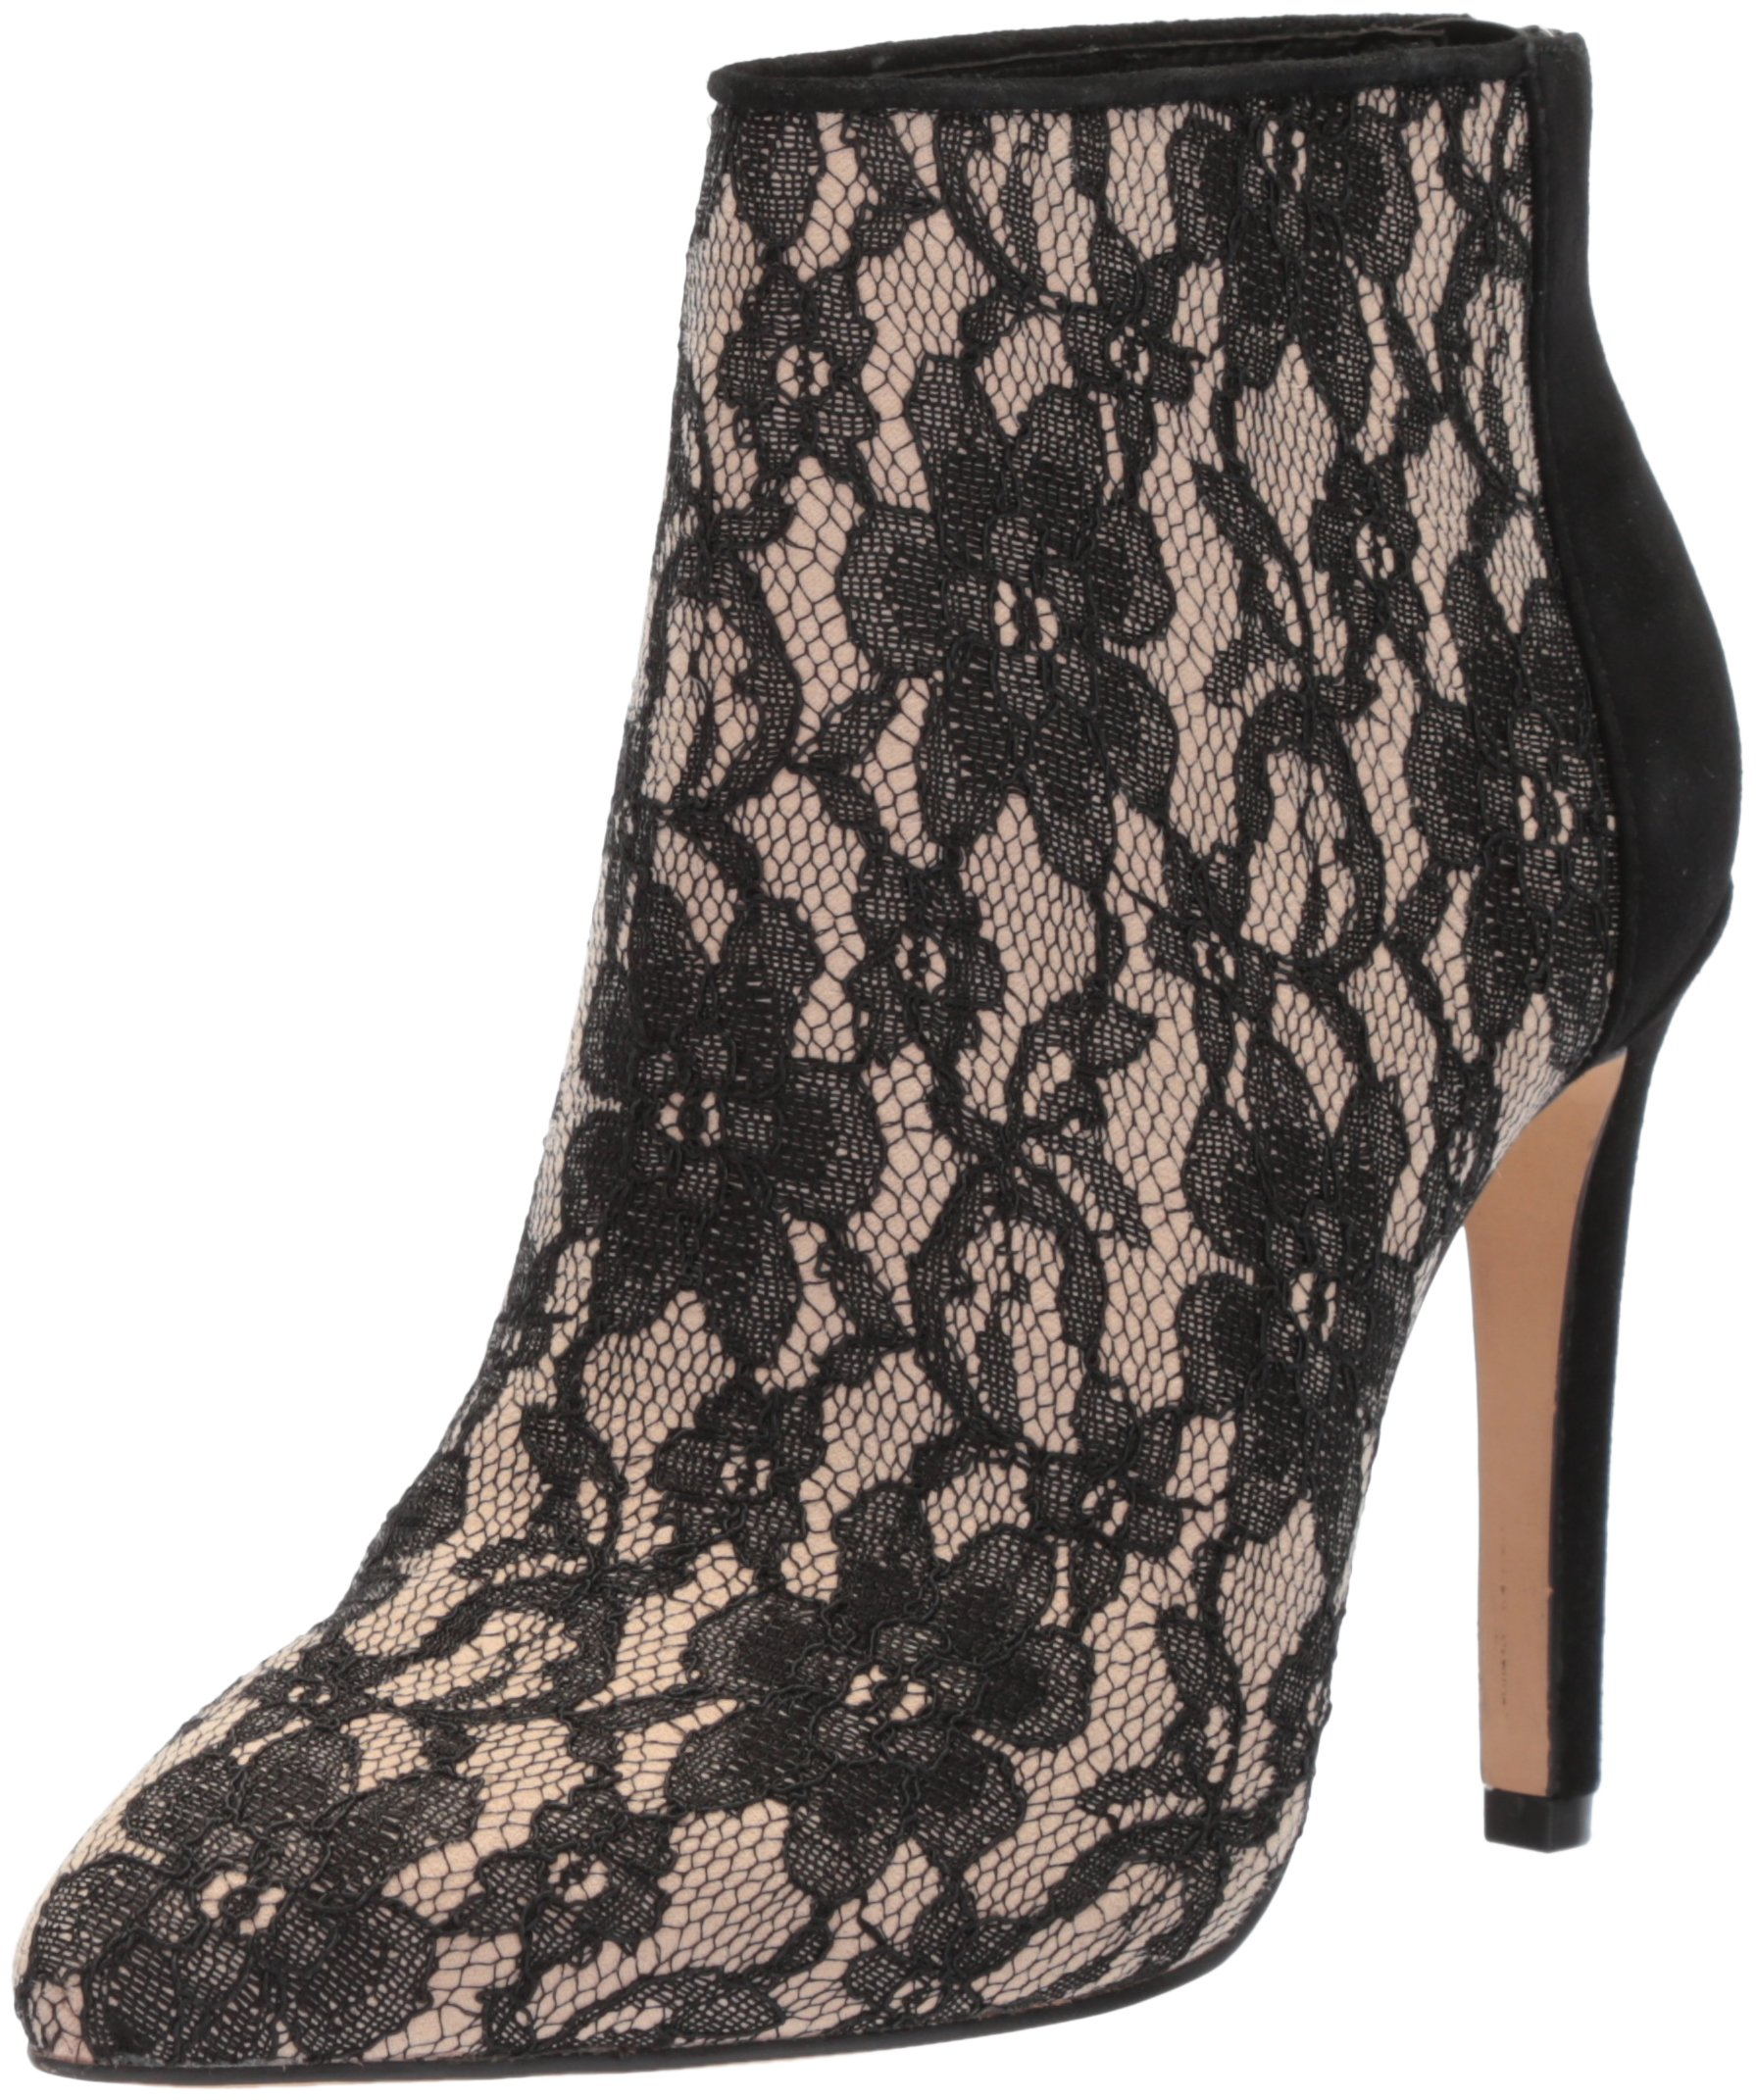 The Fix Women's Melanie Pointed Toe Stiletto Ankle Boot, Black/Nude Lace, 9.5 B US